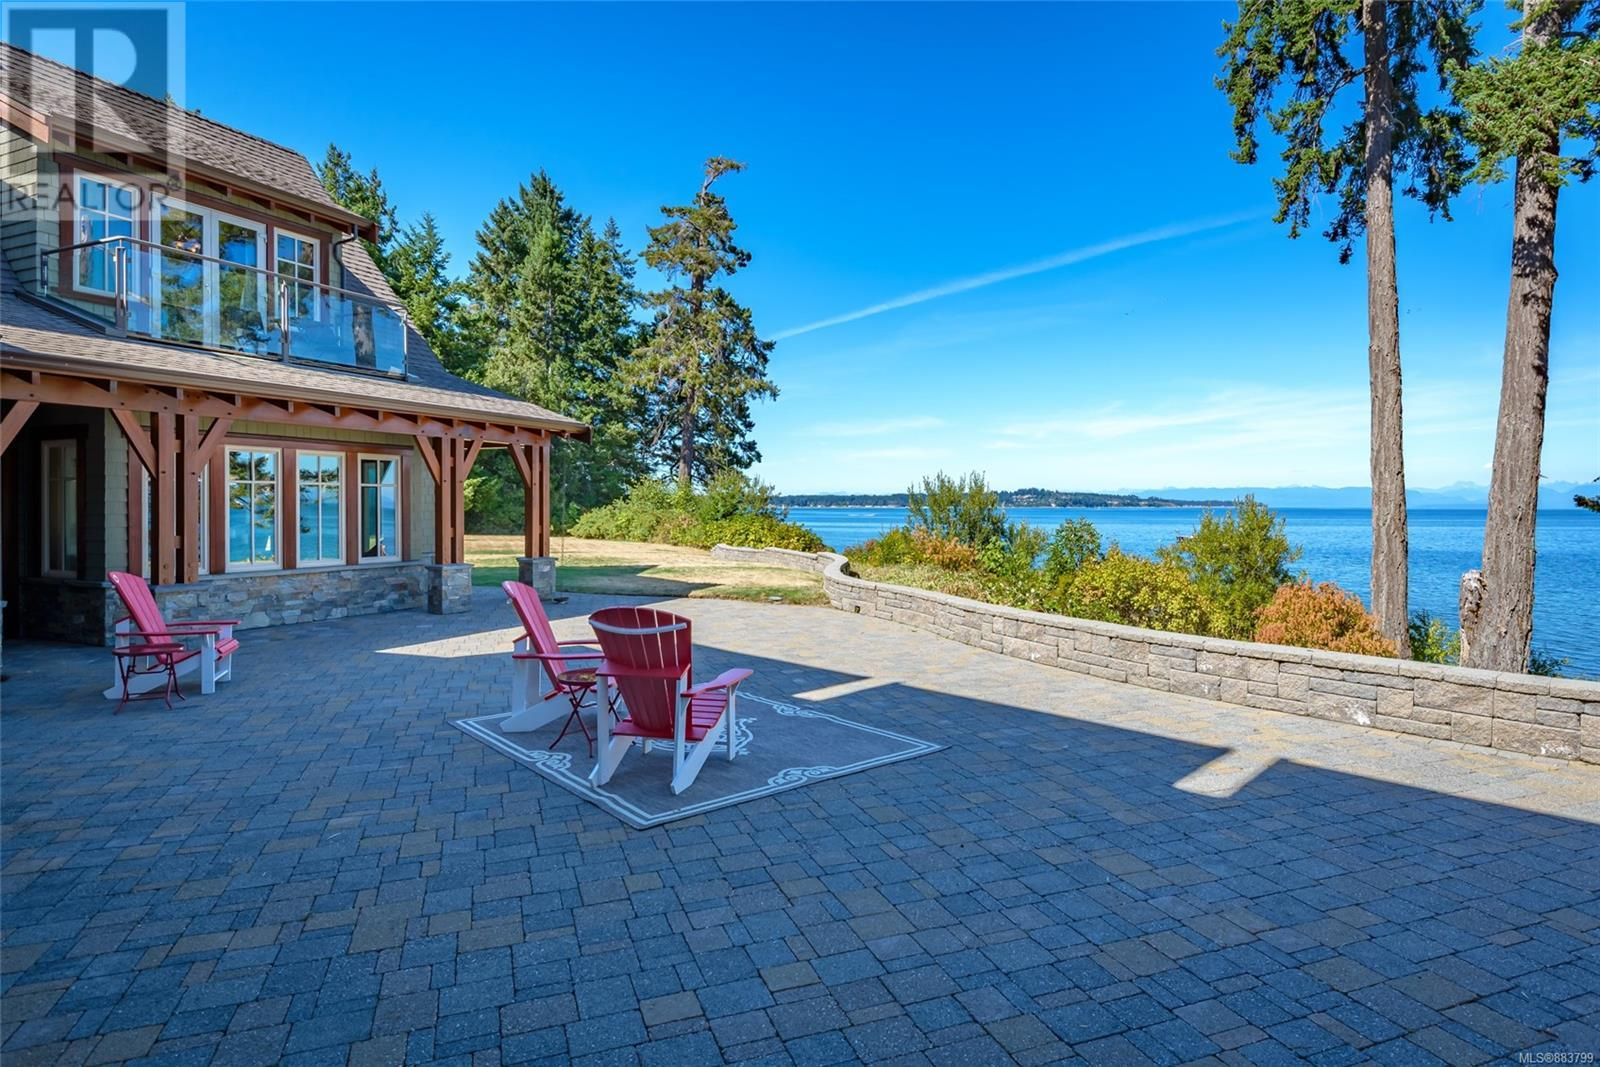 MLS® #883799 - Courtenay House For sale Image #72